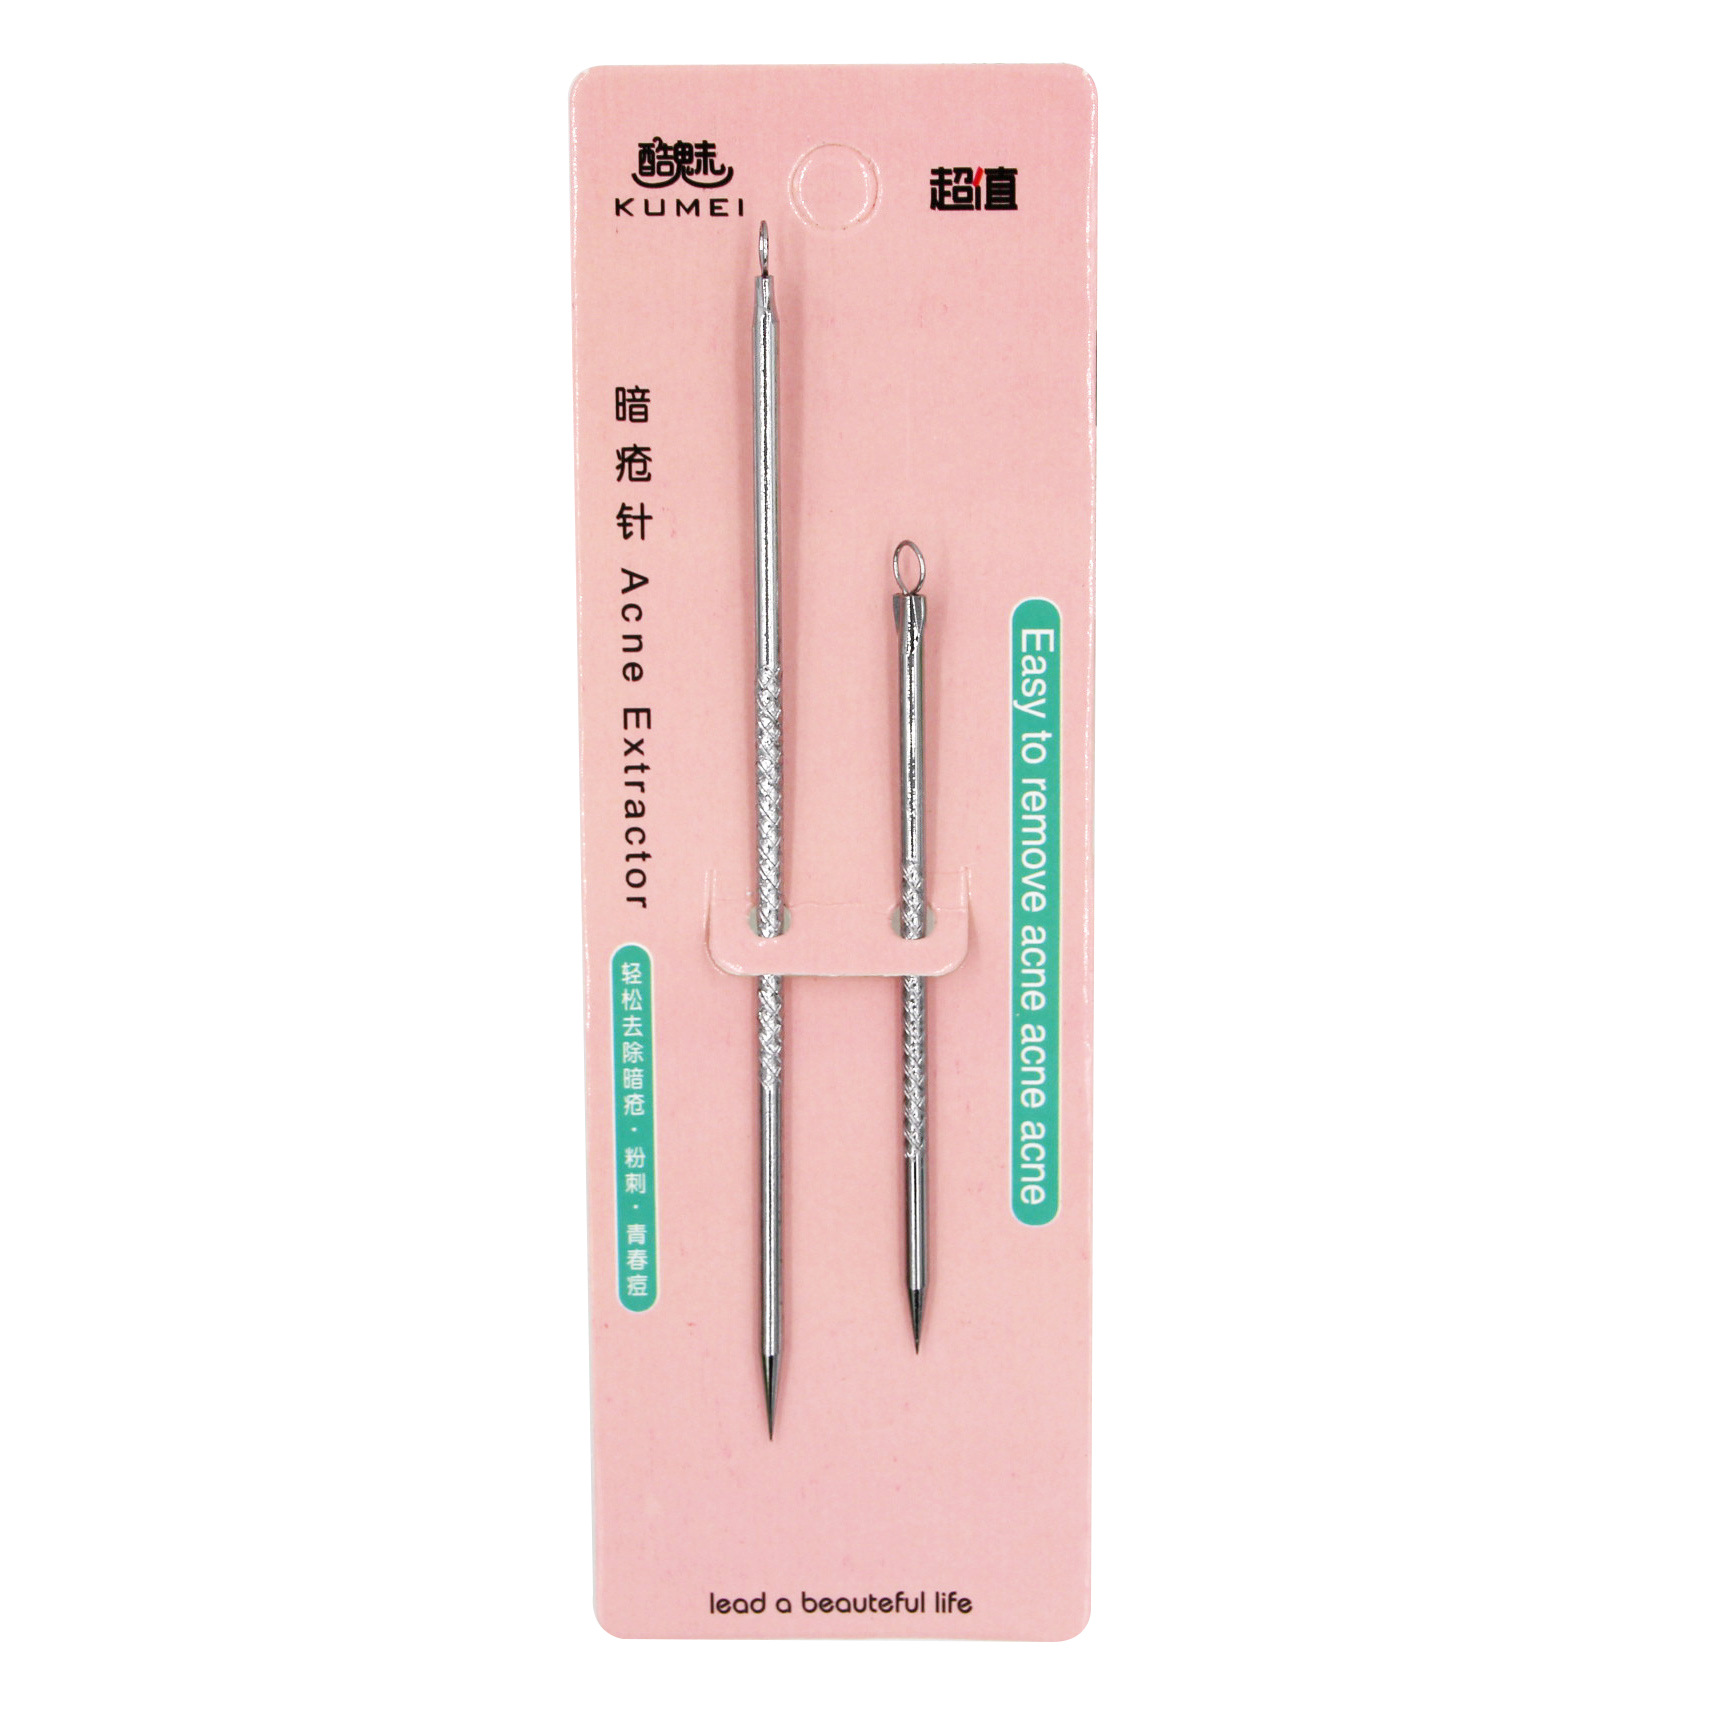 Acne Needle Set Stainless Steel Acne Needle Beauty Only Beauty Needle Remove Blackhead Pick Pox Stick 8310